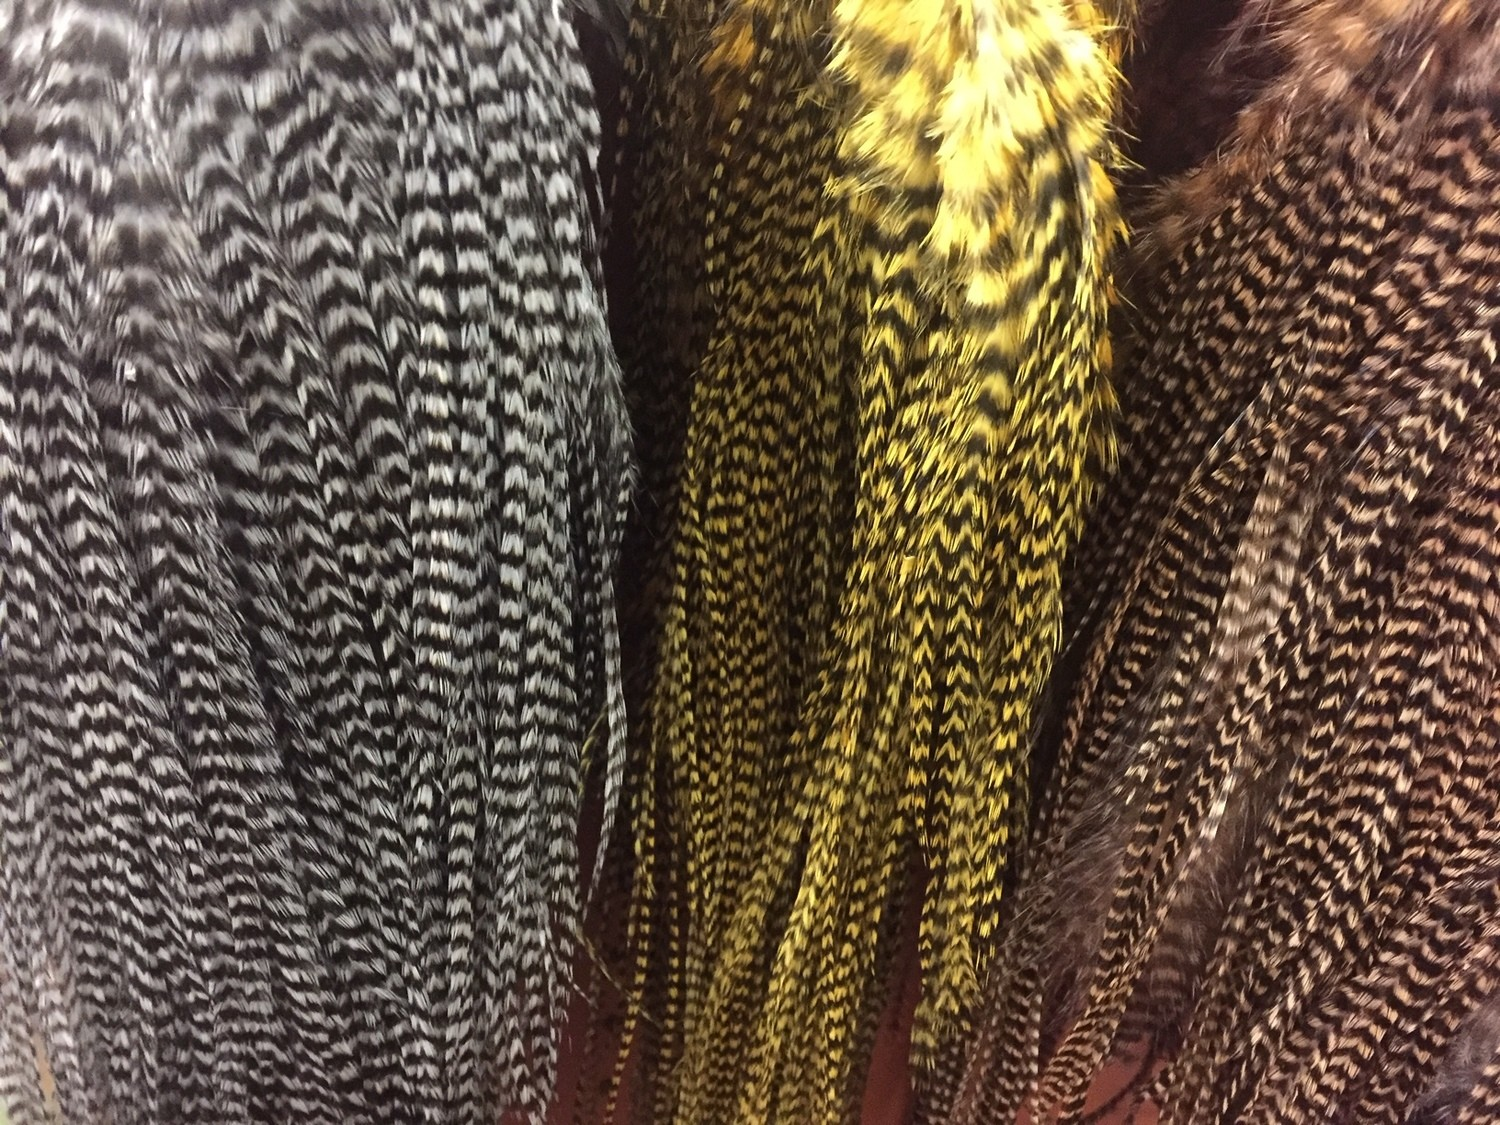 Dyed Grizzly Dry Fly Hackle